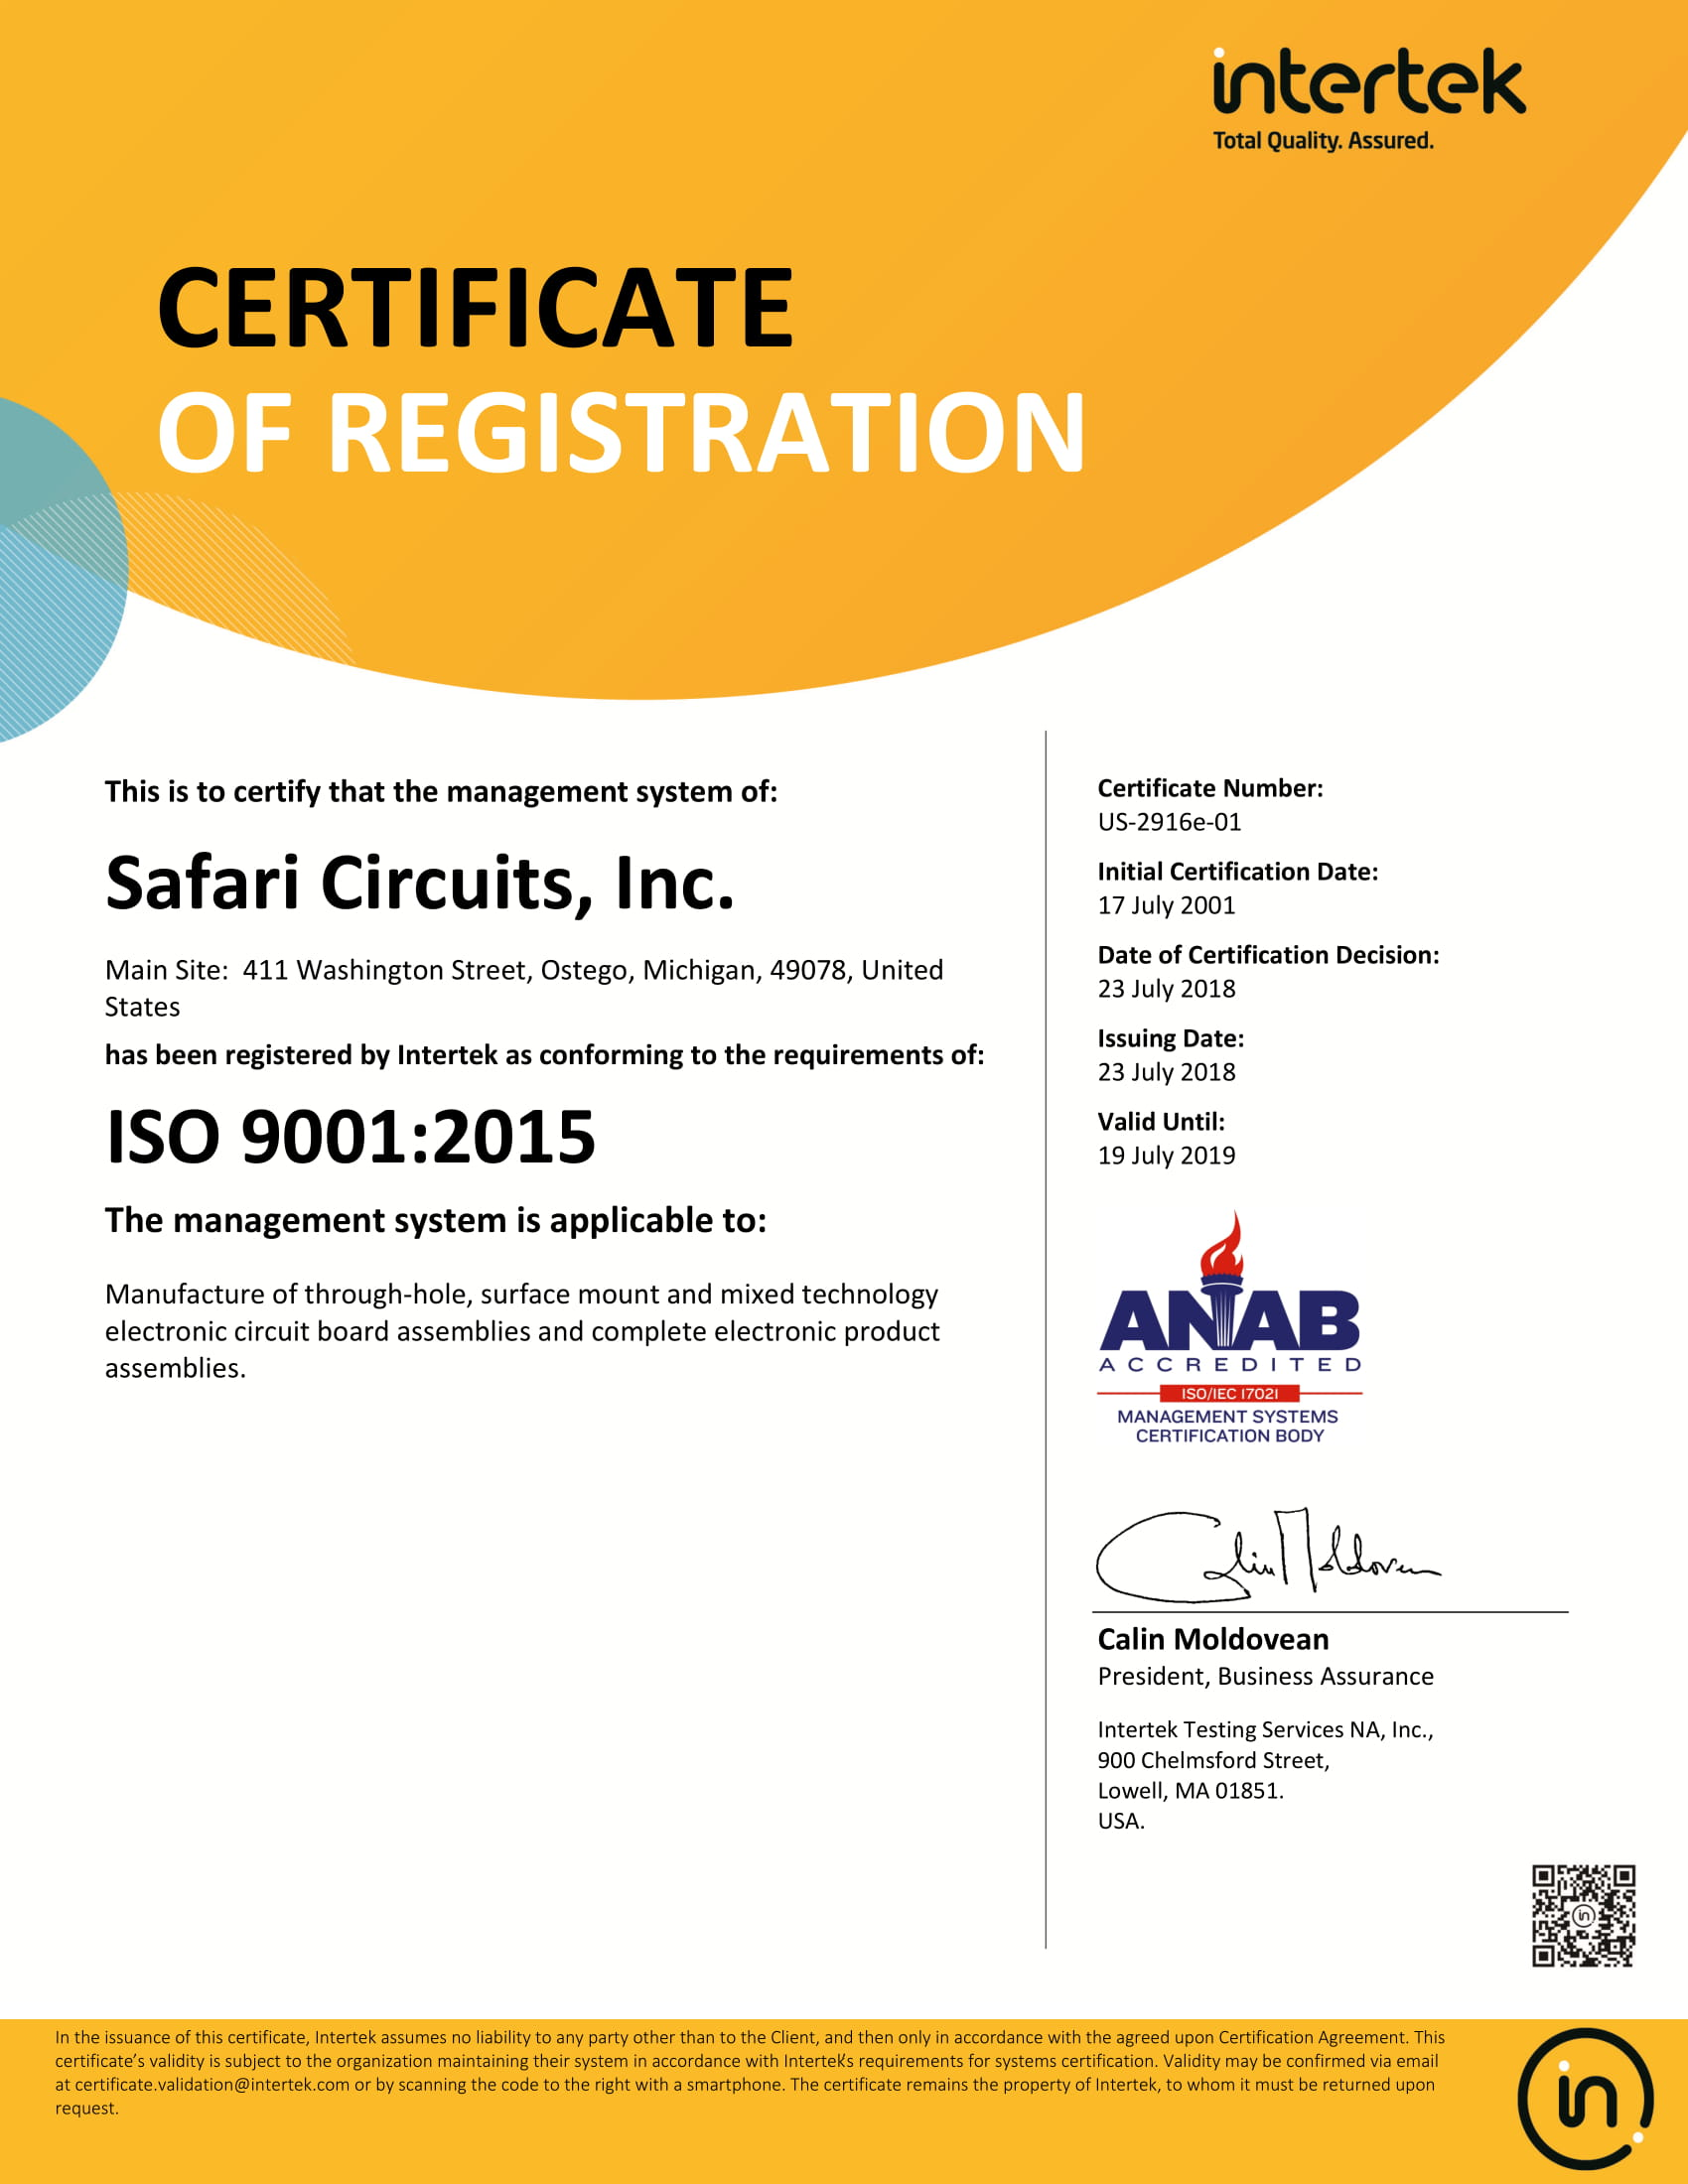 ISO 9001 Registration at Safari Circuits